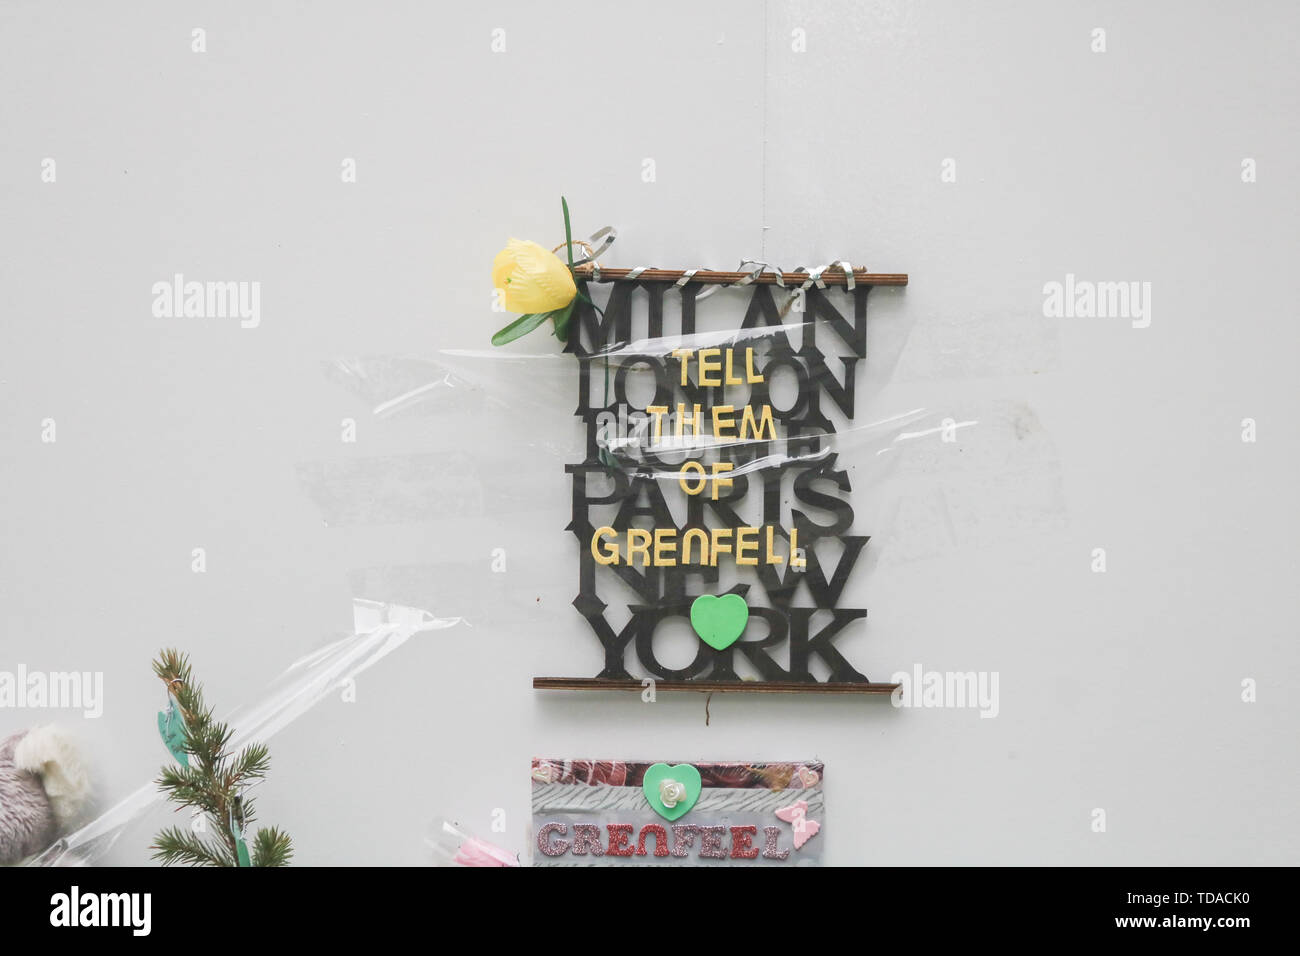 London, UK. 13th June, 2019. A message at the memorial to the Grenfell fire victims on the second anniversary of the devastating inferno fire which in the residential tower block in West London on 14 June 2017 Credit: amer ghazzal/Alamy Live News - Stock Image